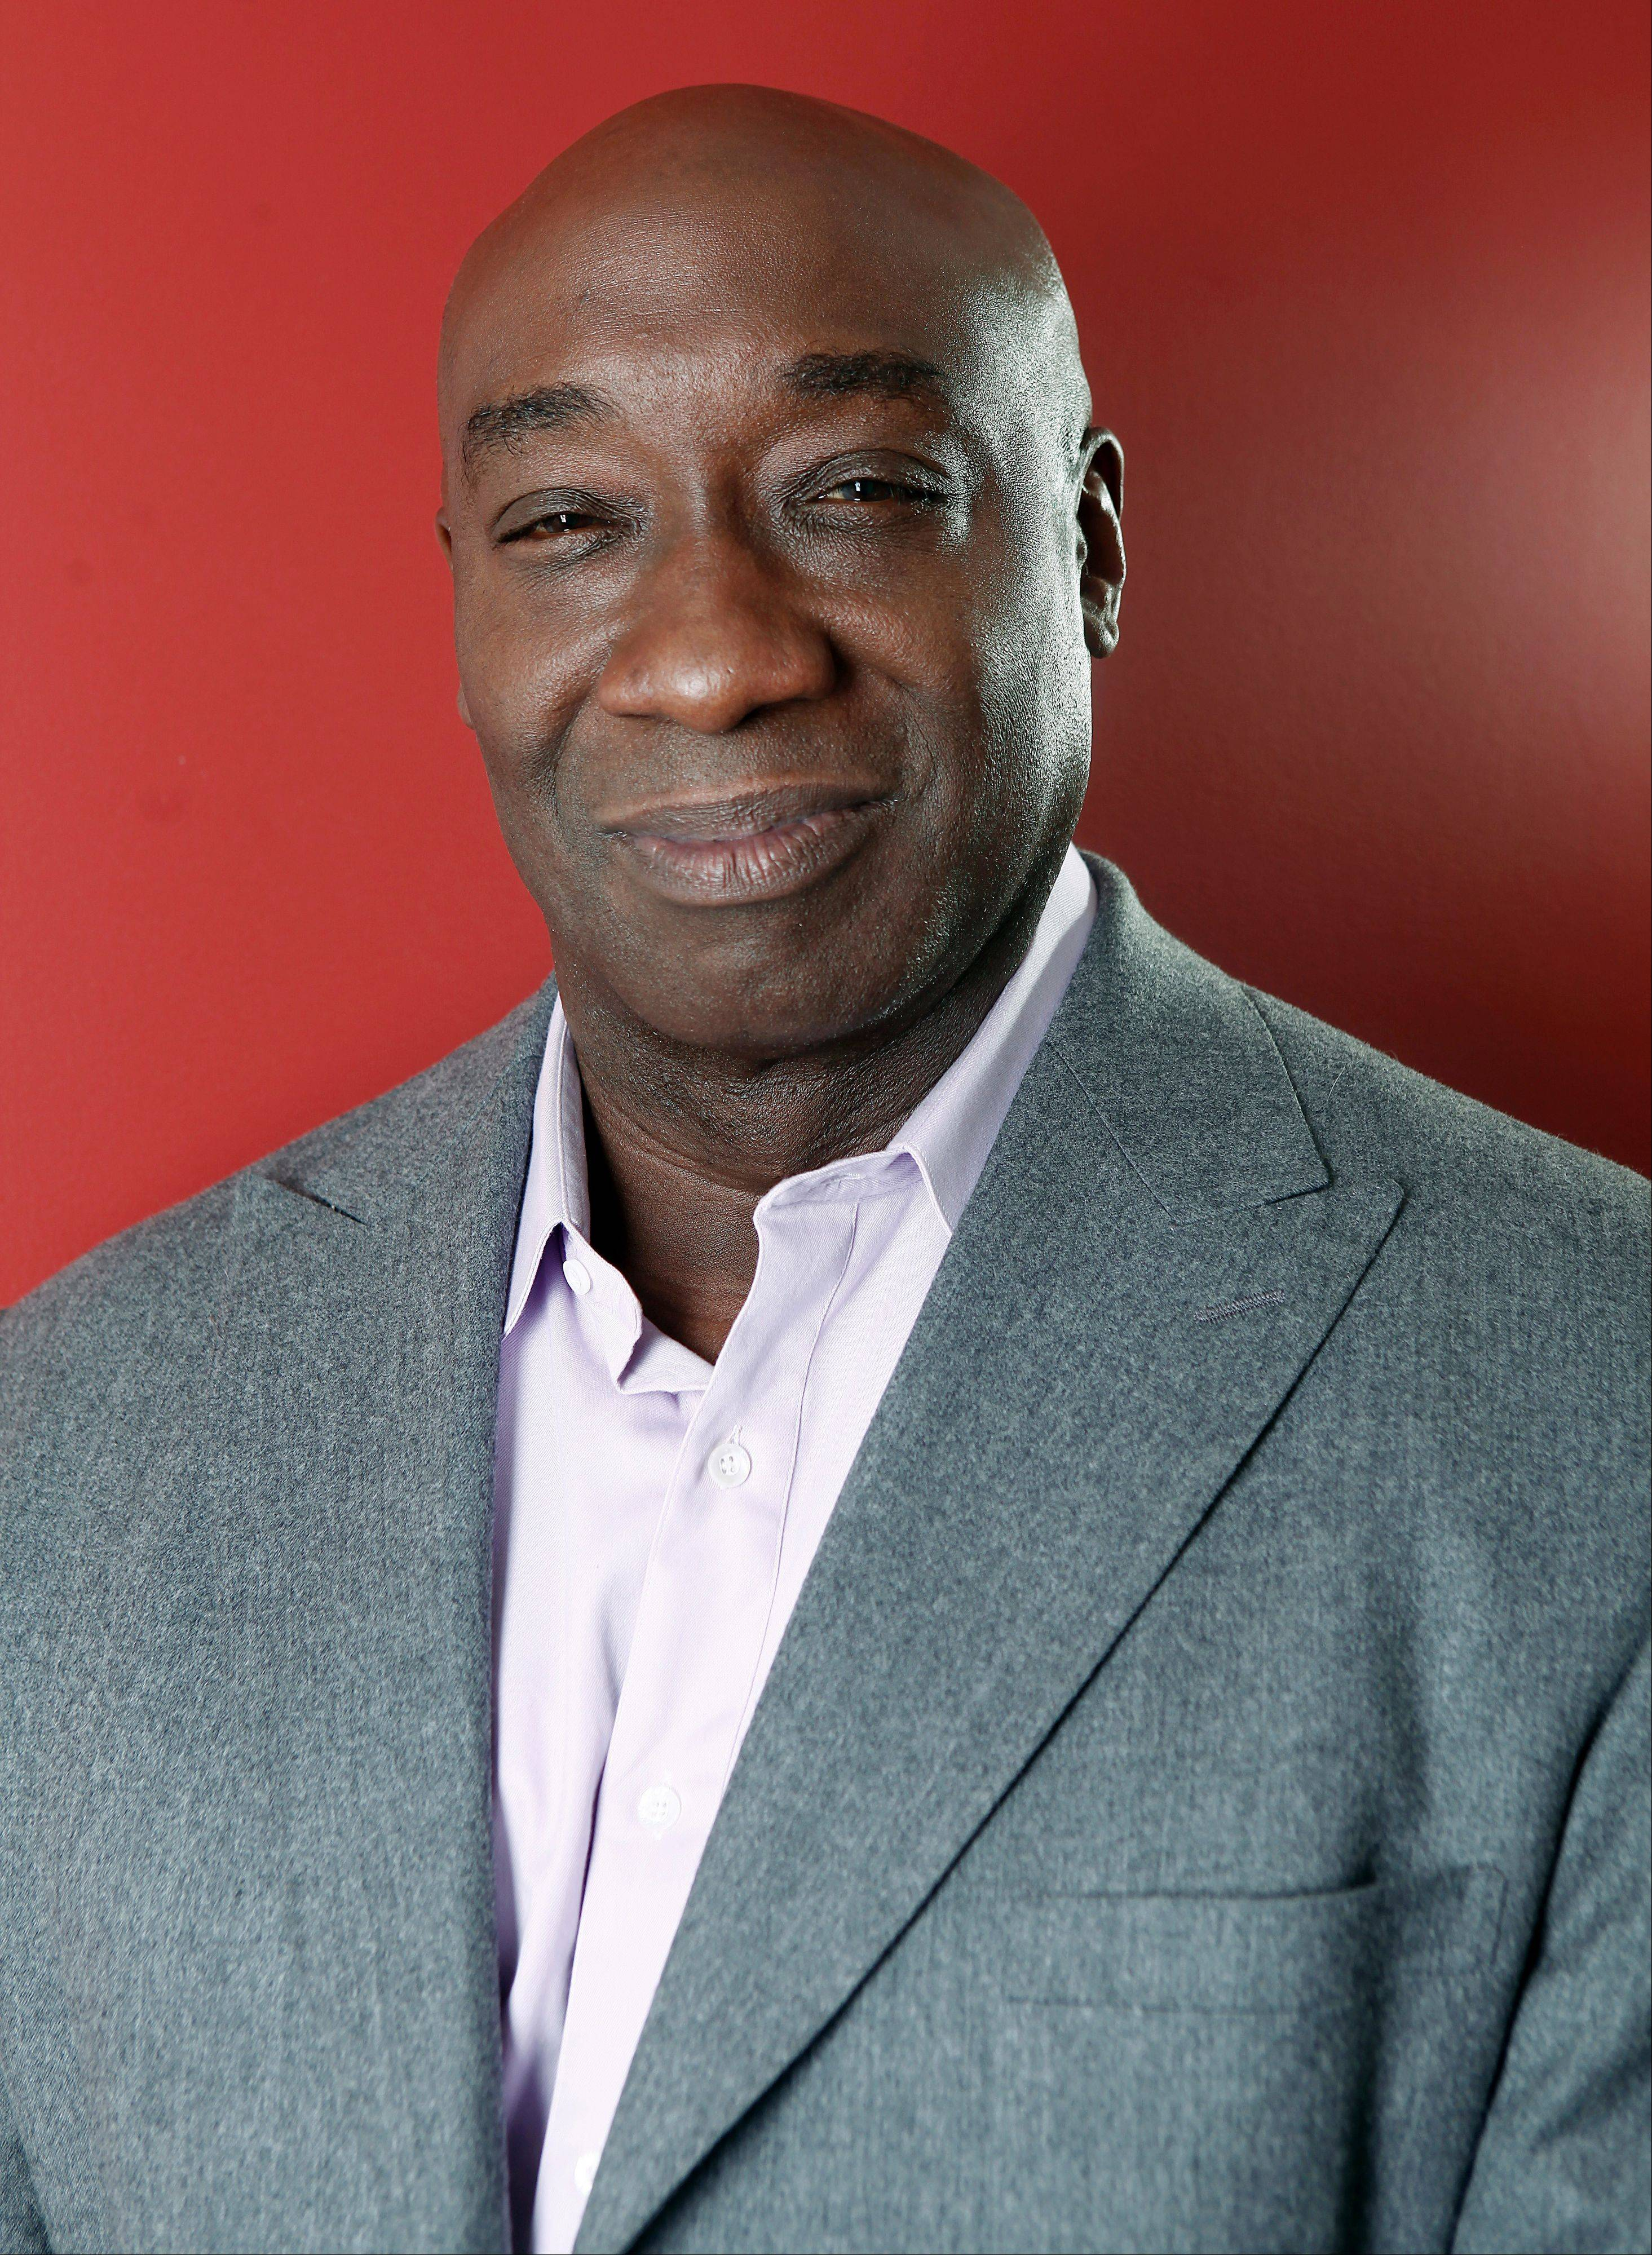 Michael Clarke Duncan's publicist confirmed that the 54-year-old actor suffered a myocardial infarction early Friday.